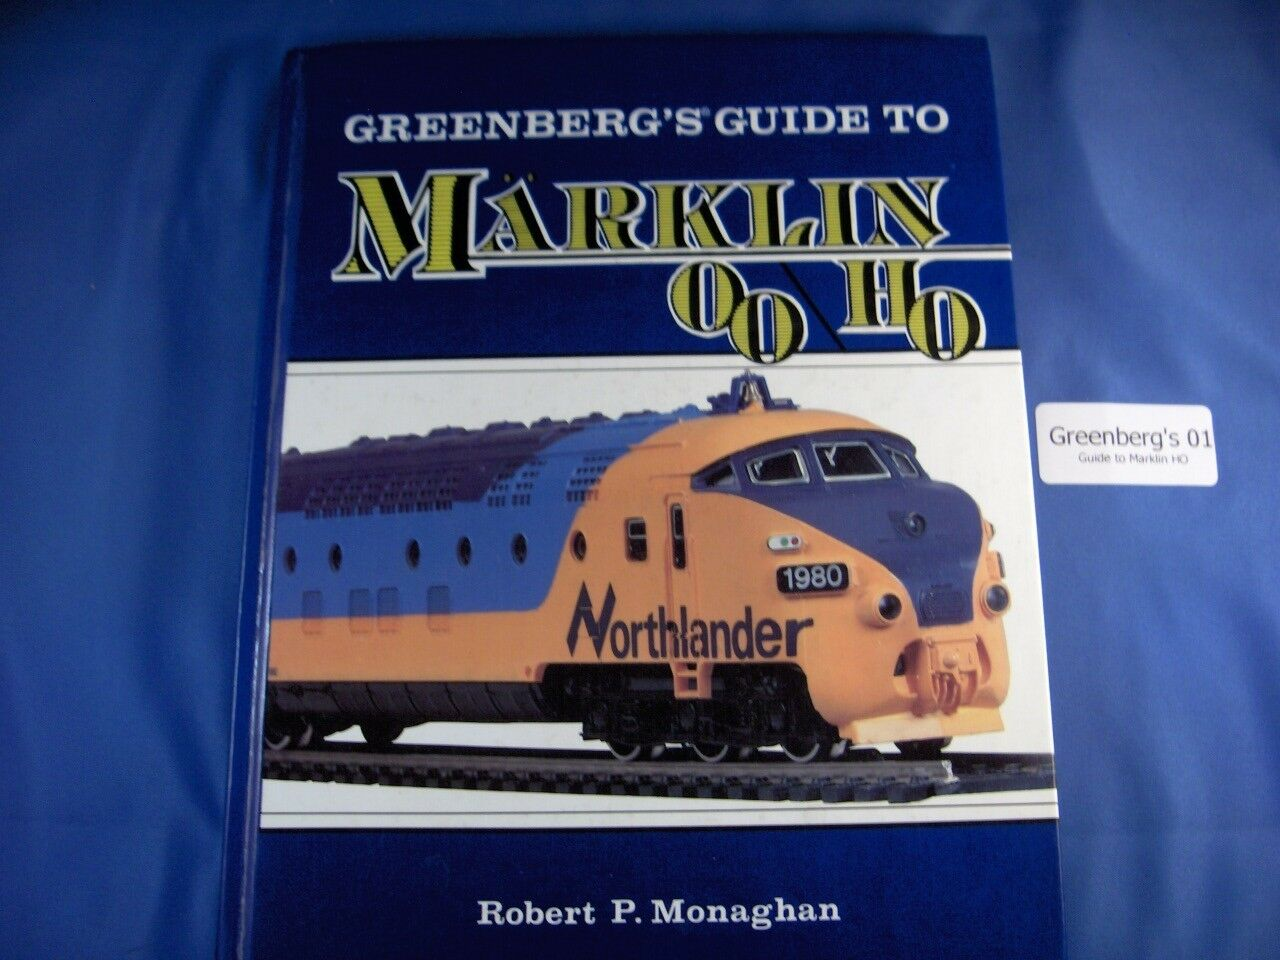 EE verdeberg's Guide to Marklin HO OO EXC Condition verdeberg 01